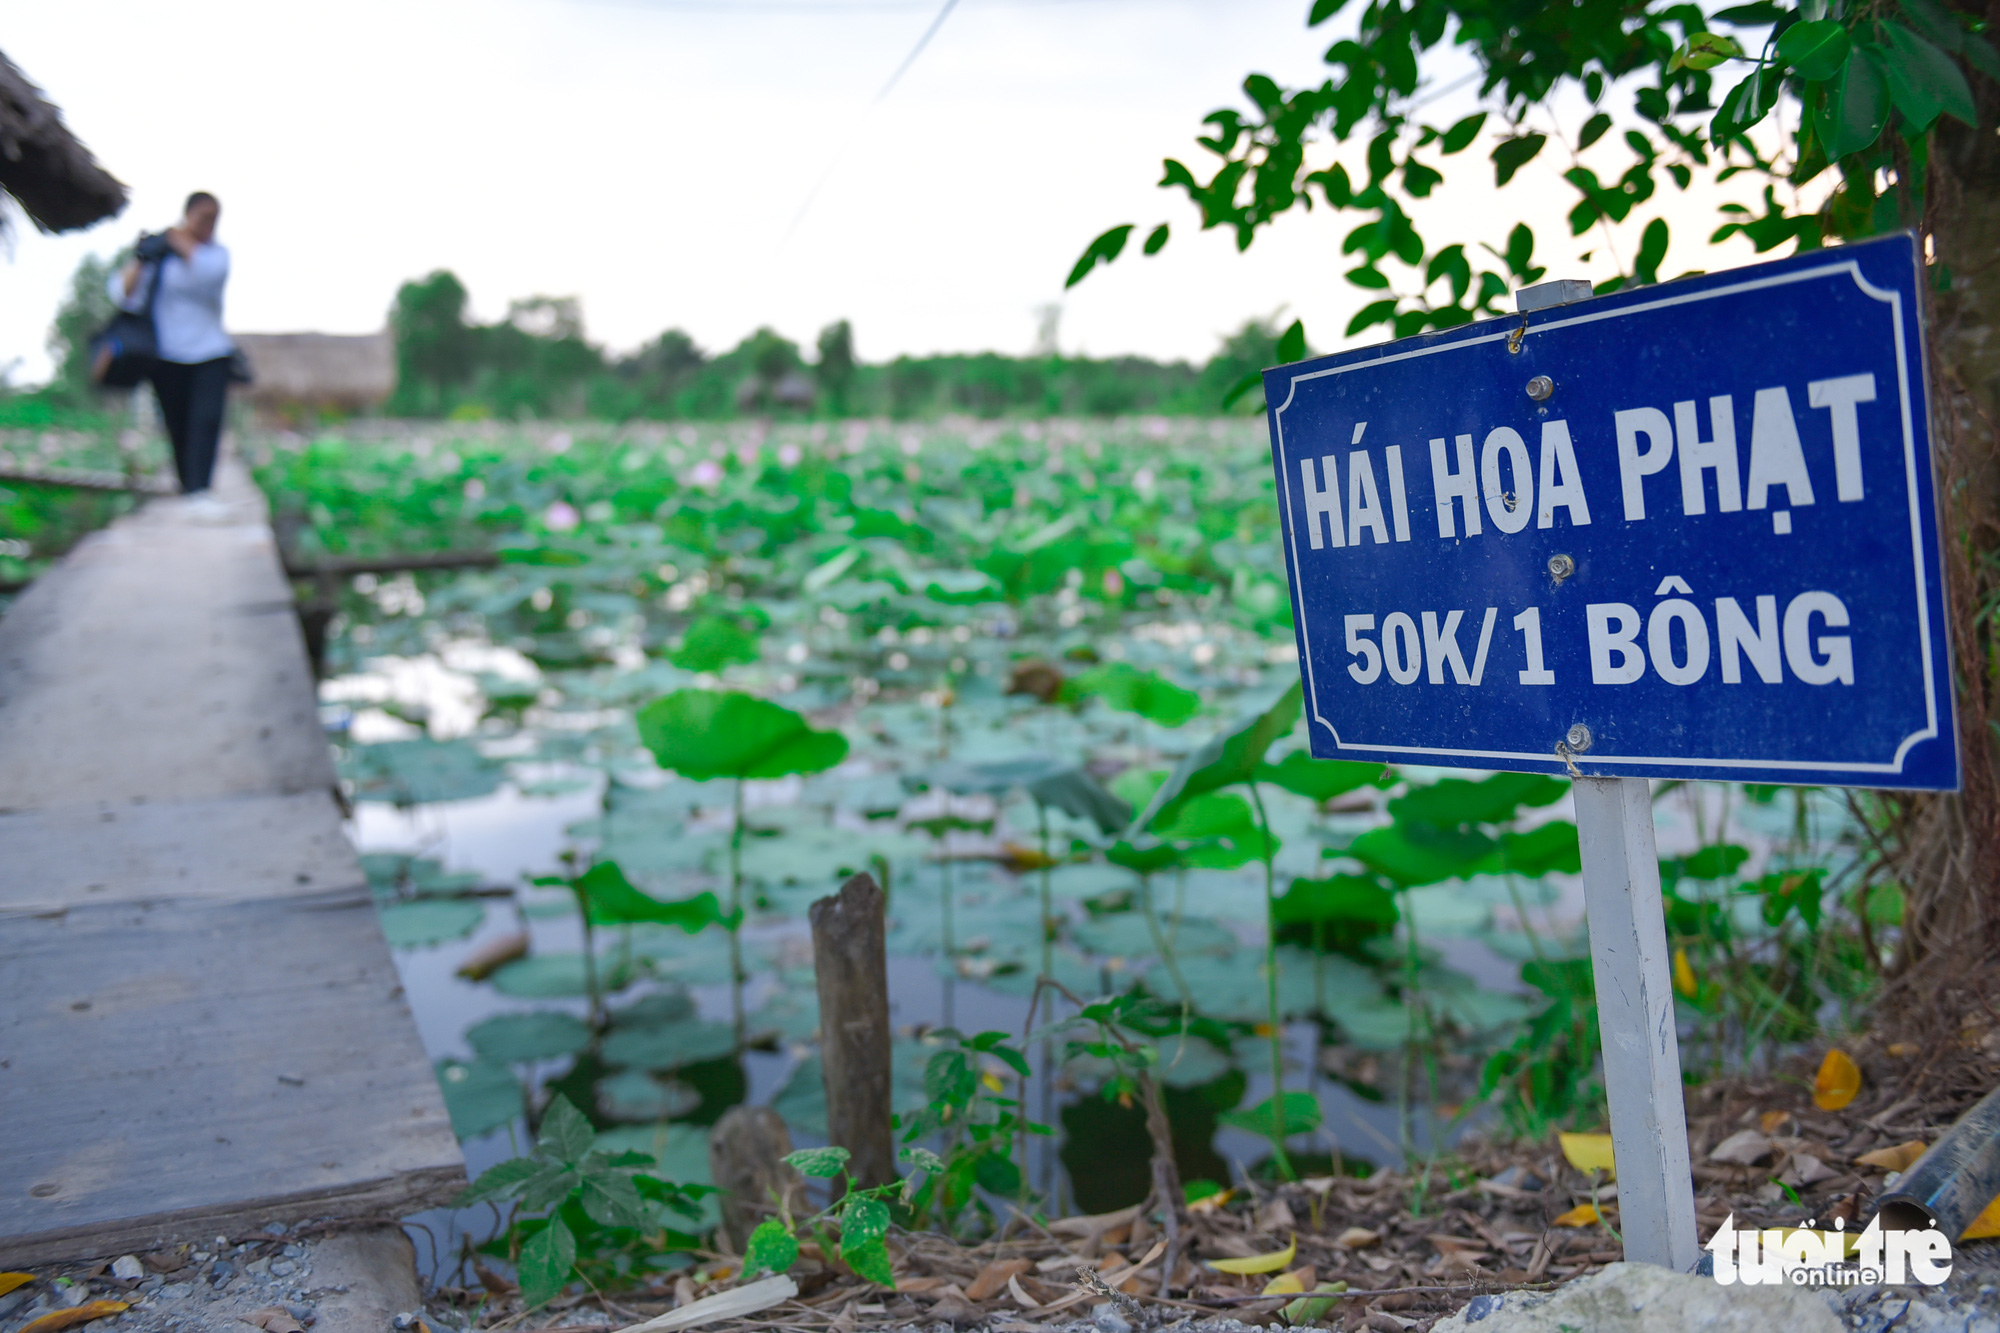 A sign warning visitors that those found picking flowers must pay VND50,000 per flower picked is seen at a garden located in District 9, Ho Chi Minh City, Vietnam. Photo: Ngoc Phuong / Tuoi Tre